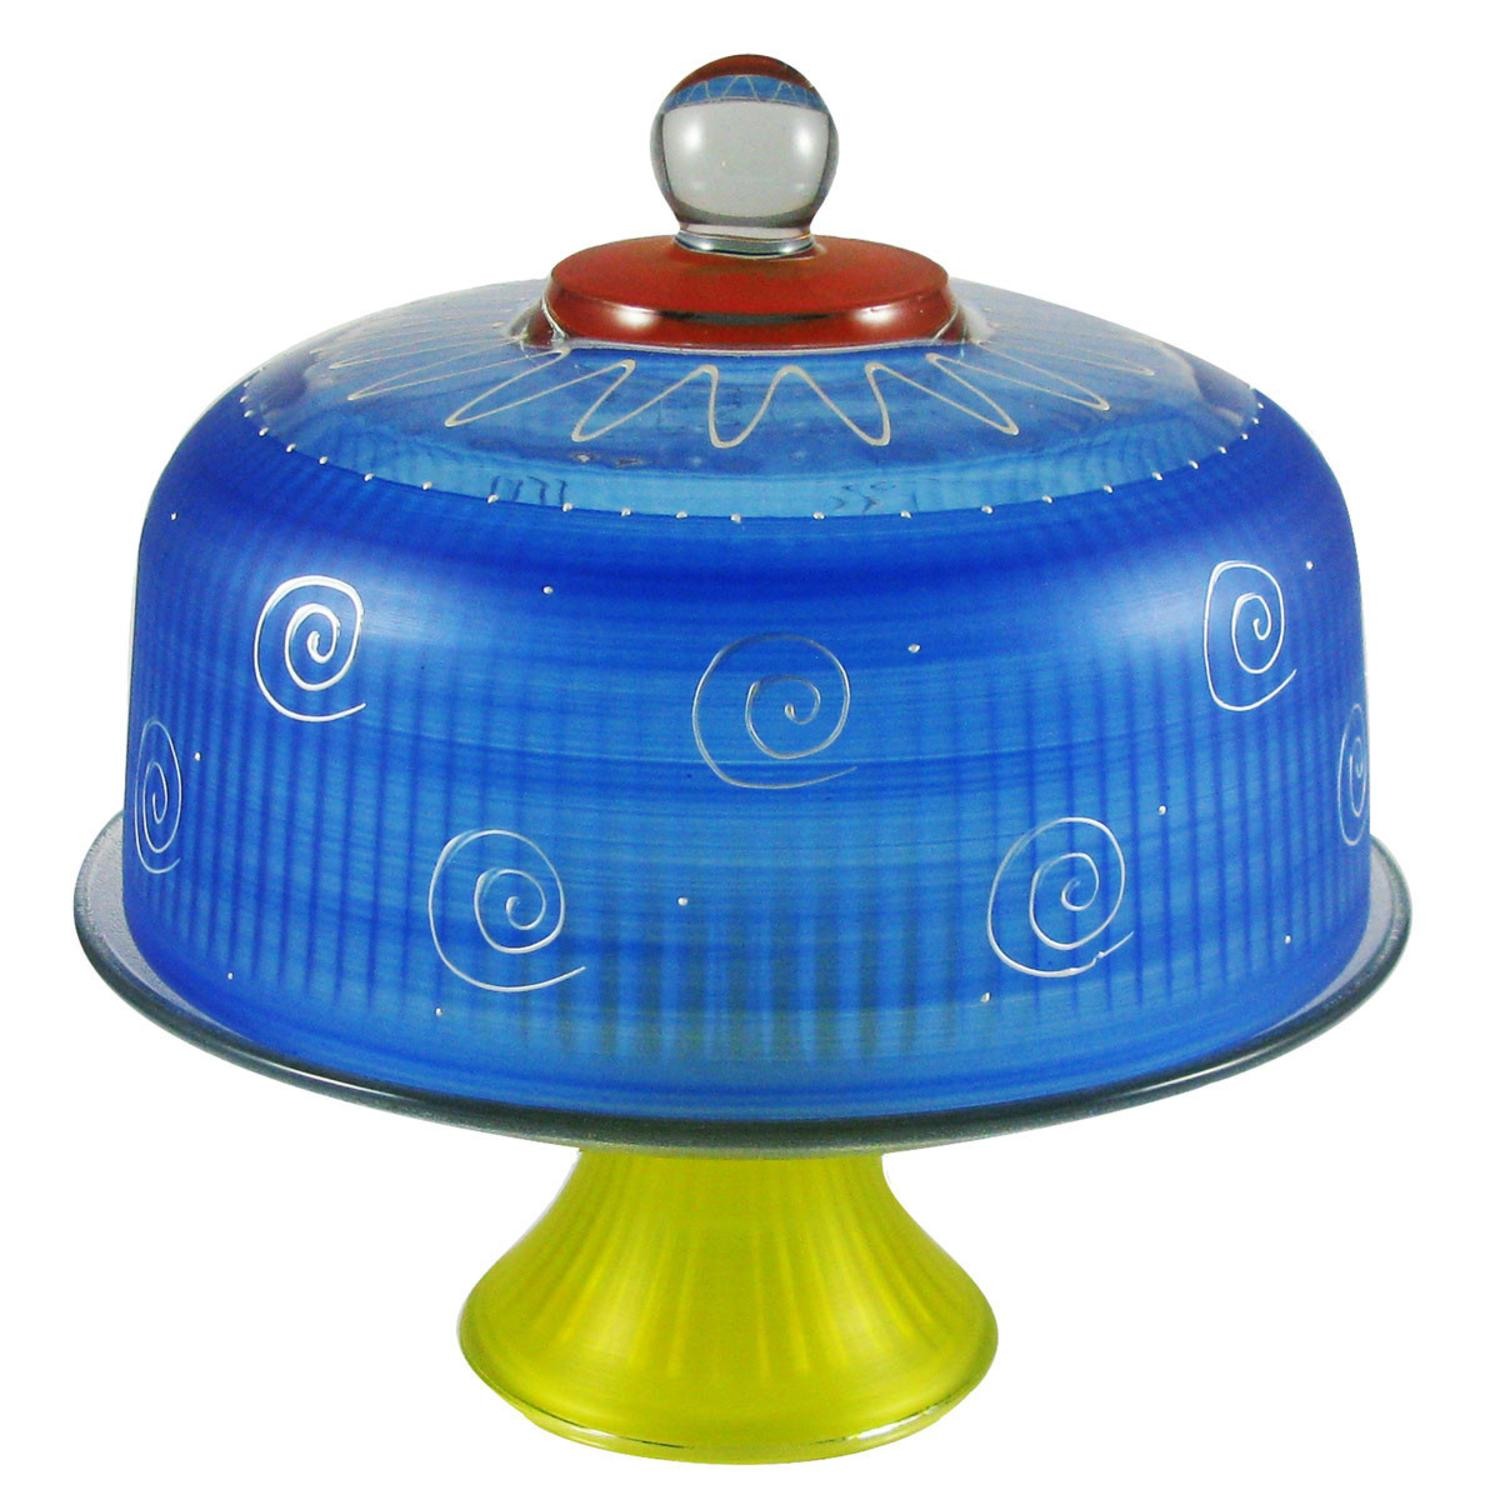 Frosted Dark Blue and White Hand Painted Glass Convertible Cake Dome 11""